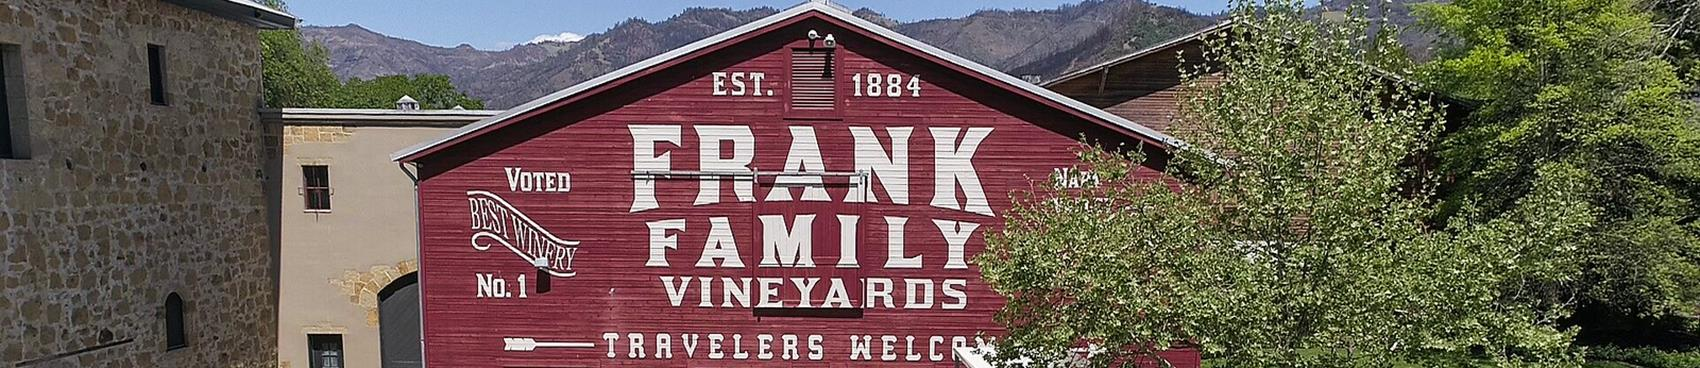 A image of Frank Family Vineyards